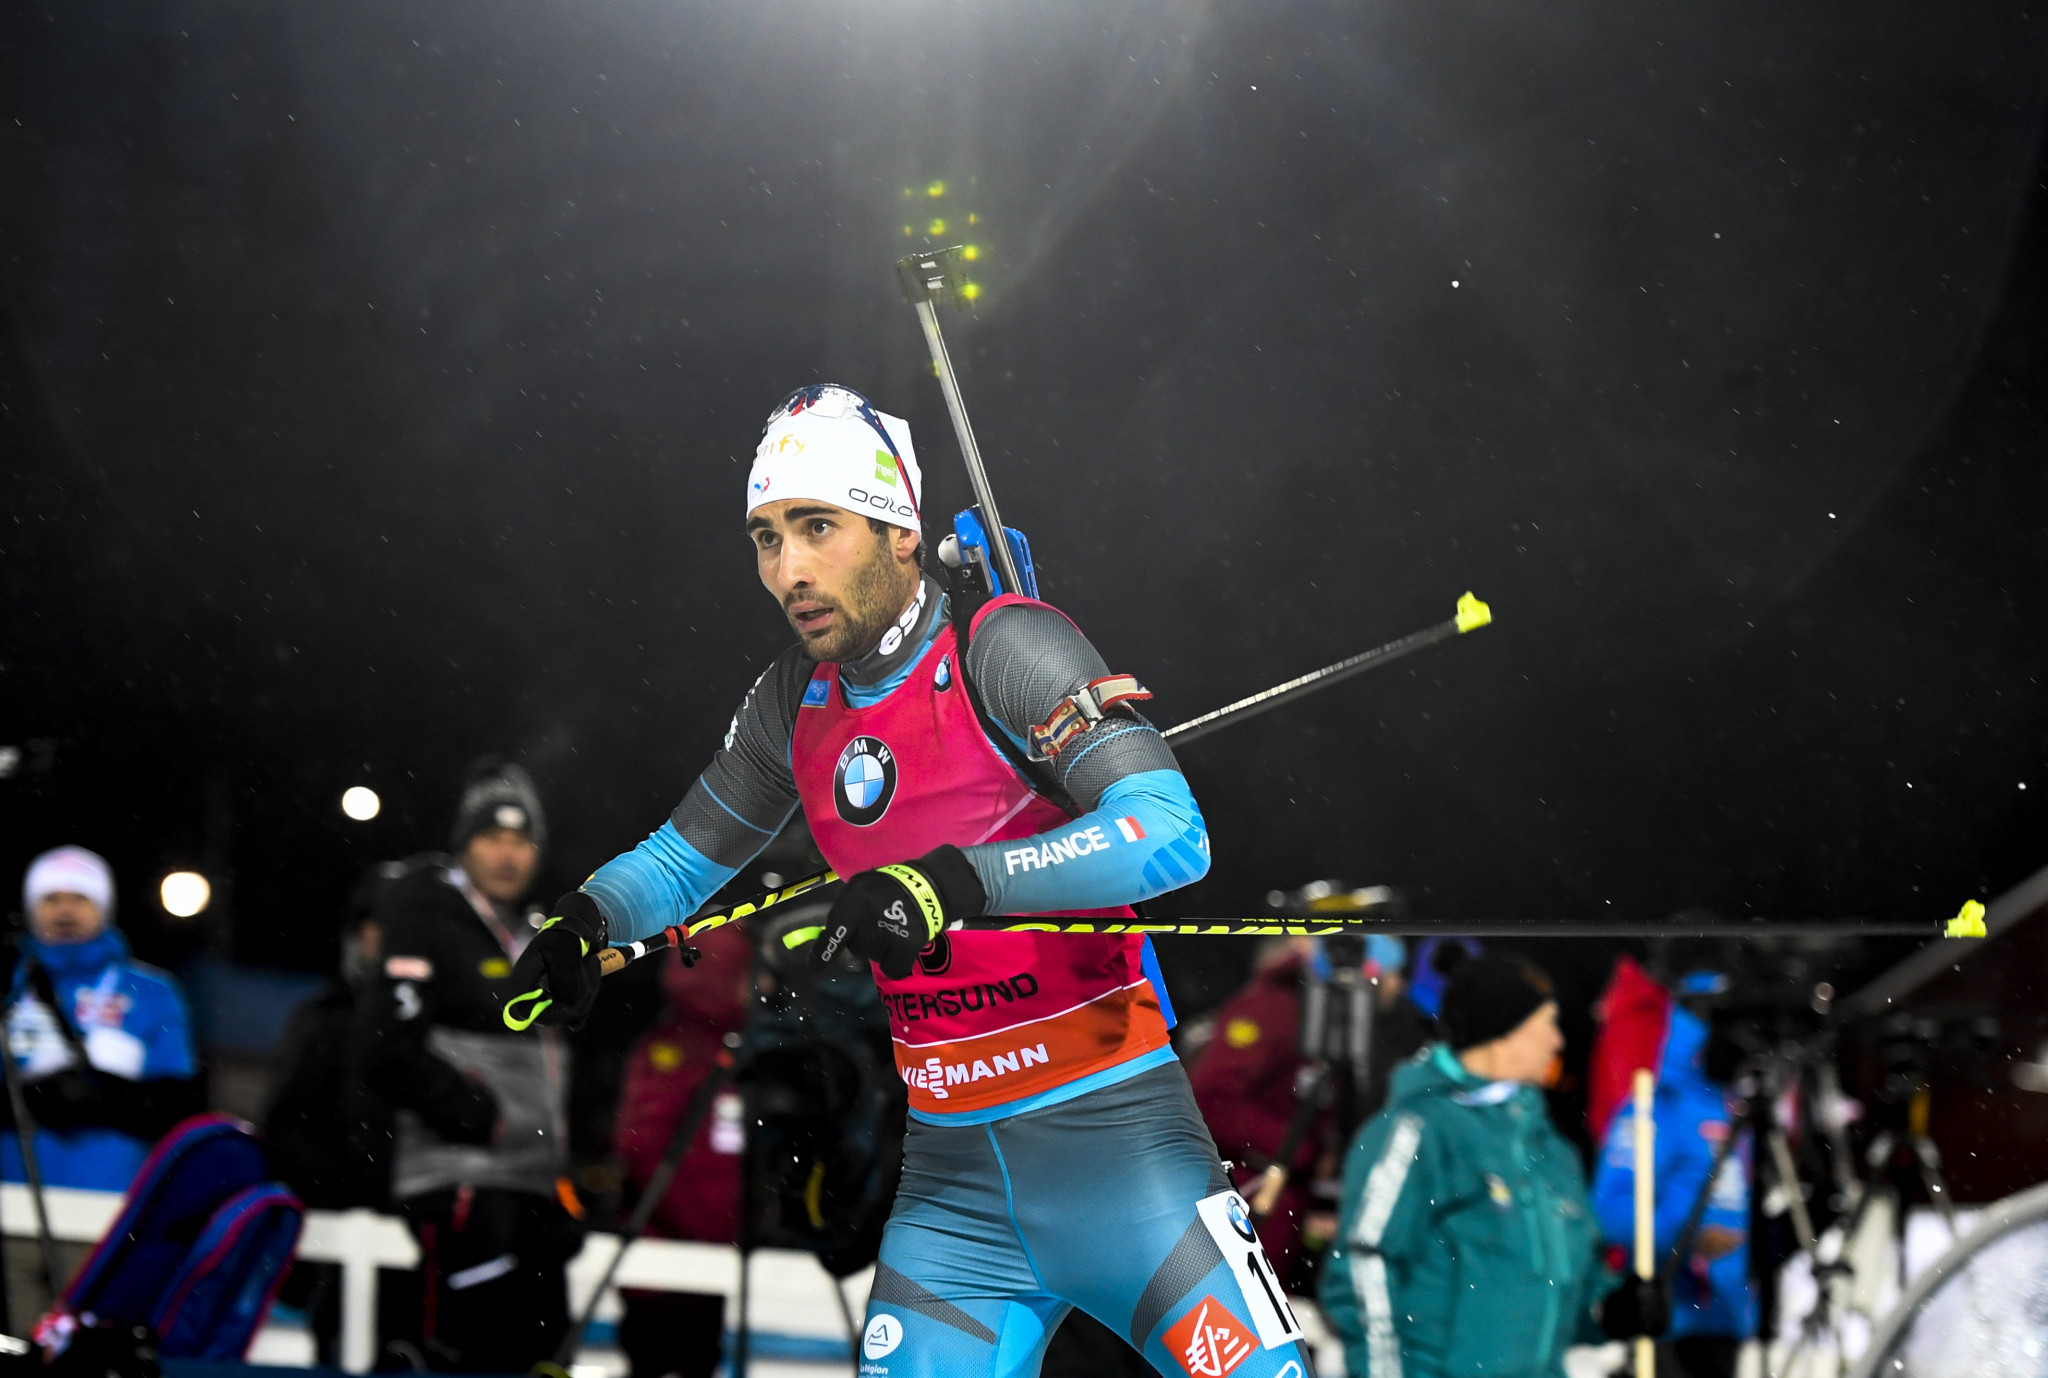 Frenchman Martin Fourcade fell narrowly short as he was 0.7 seconds behind the victorious Norwegian ©Getty Images